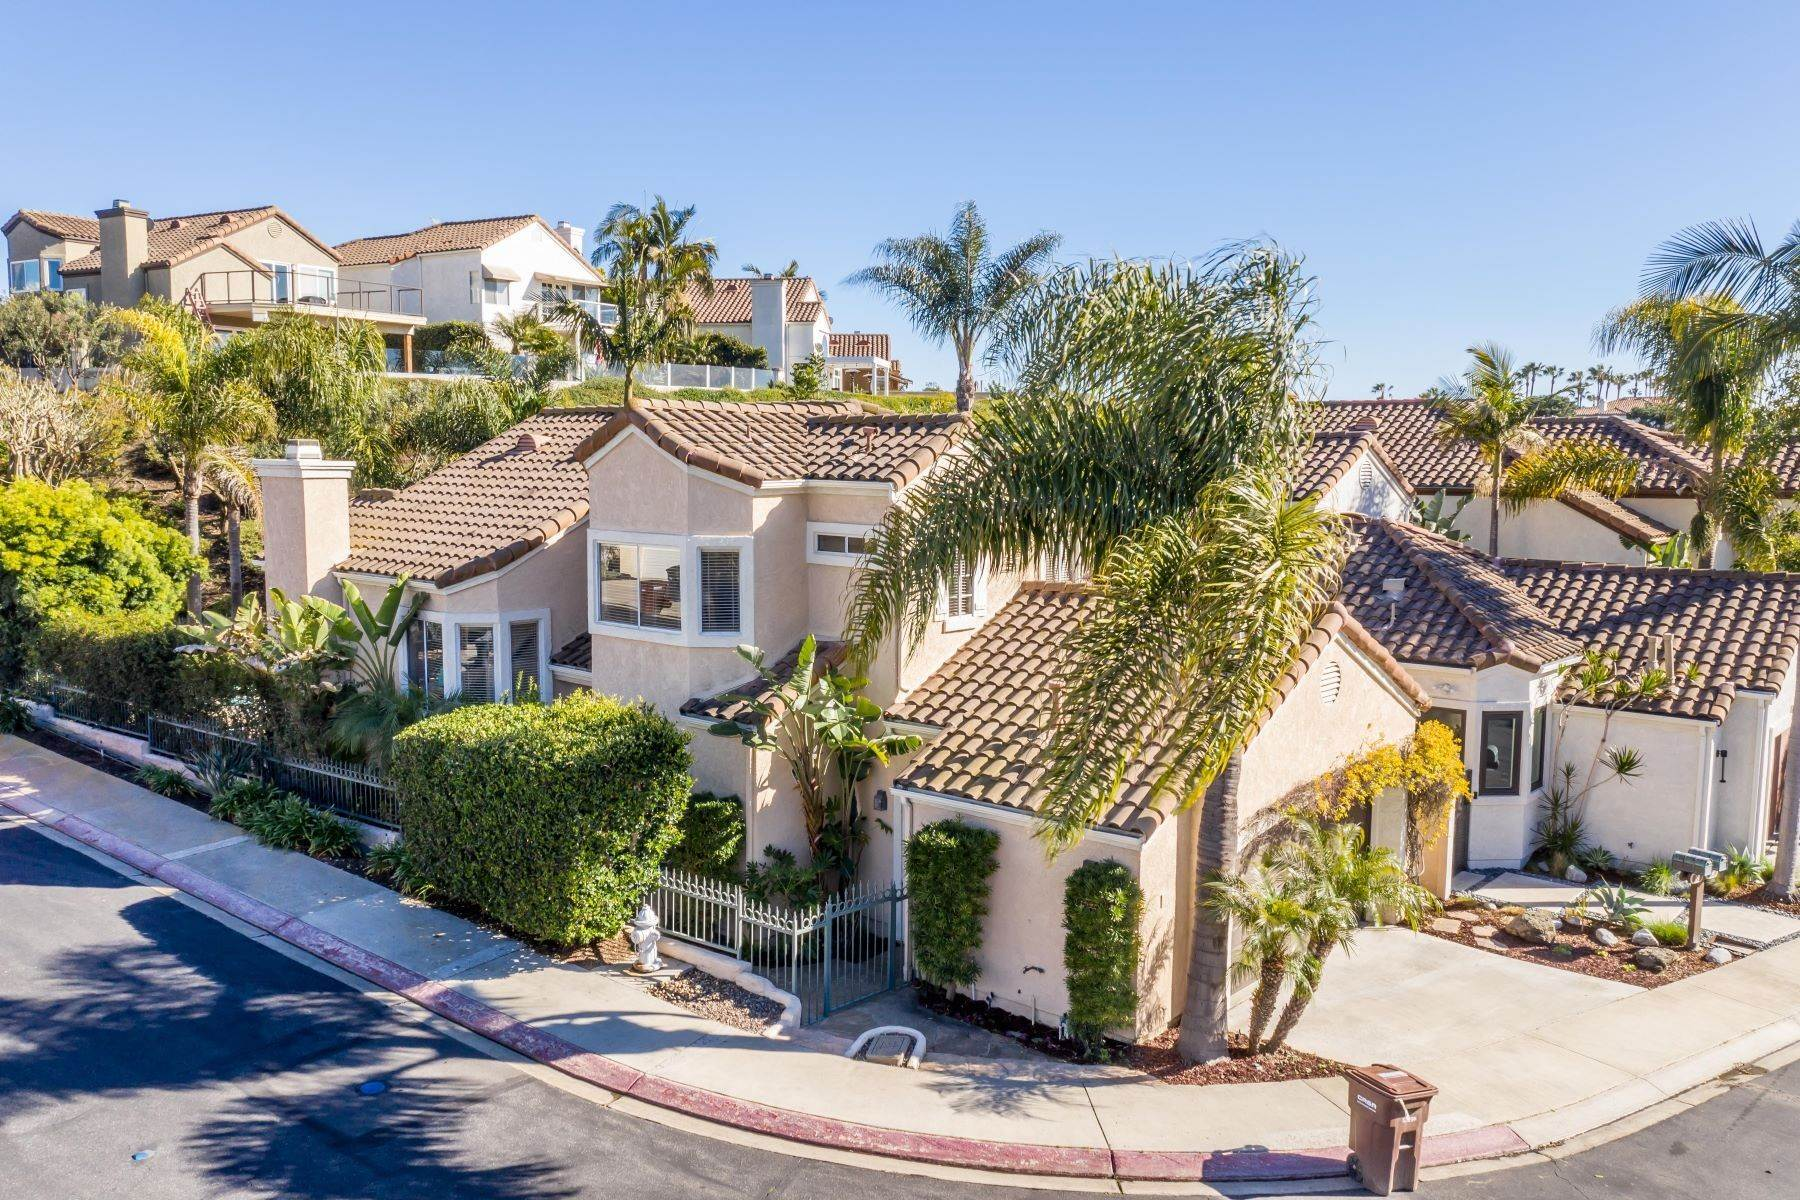 Single Family Homes for Sale at 20 Reina, Dana Point, CA 92629 20 Reina Dana Point, California 92629 United States